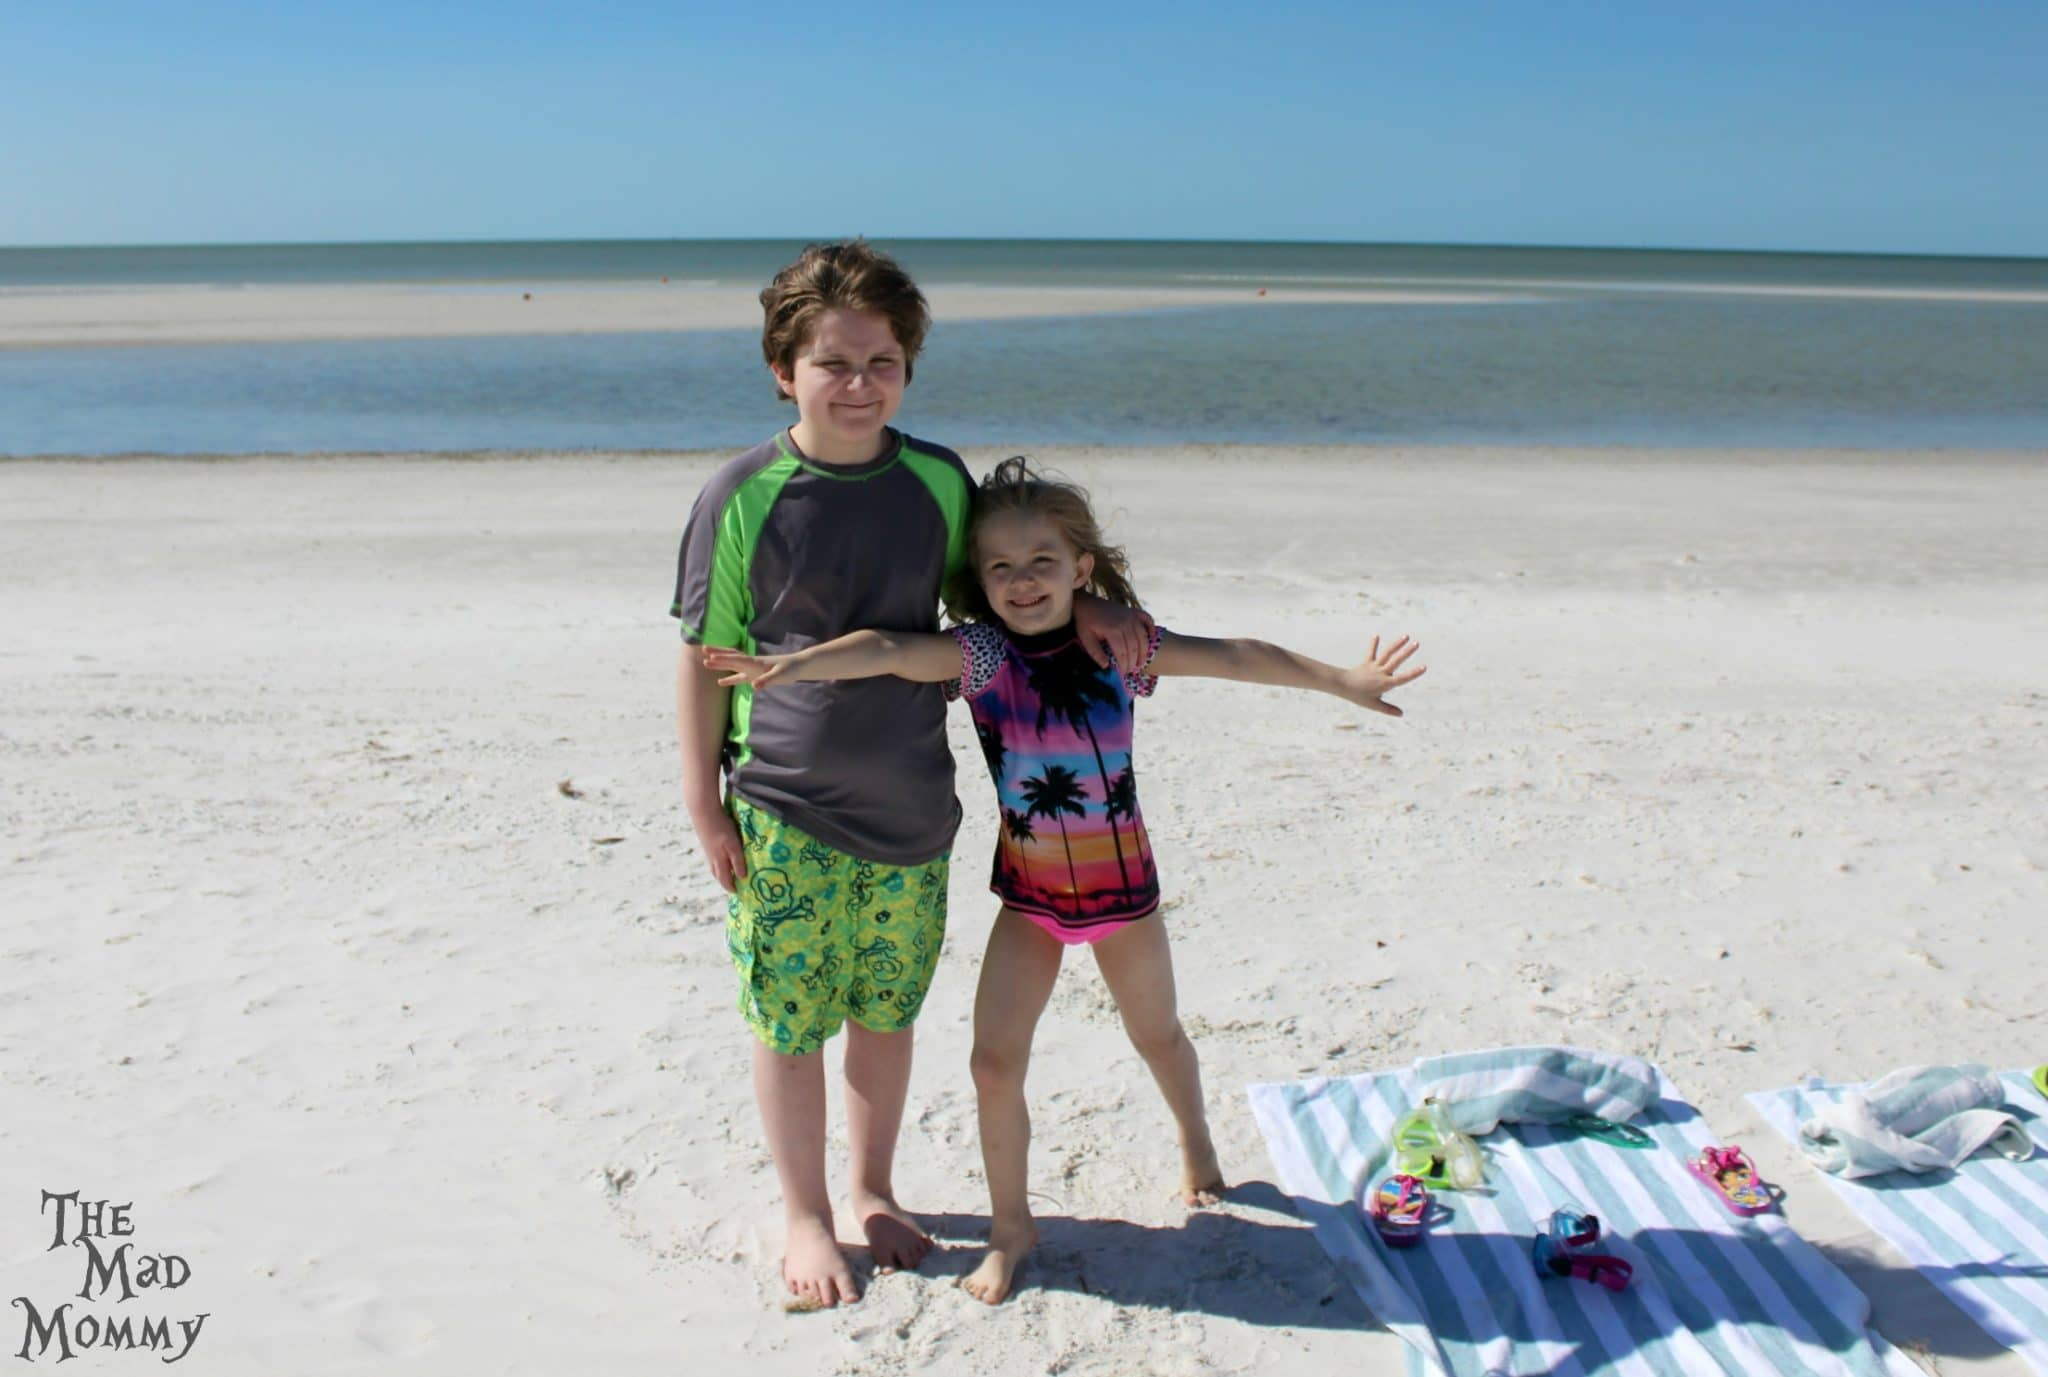 The kids loved being able to walk right out on to the beach and into the ocean!